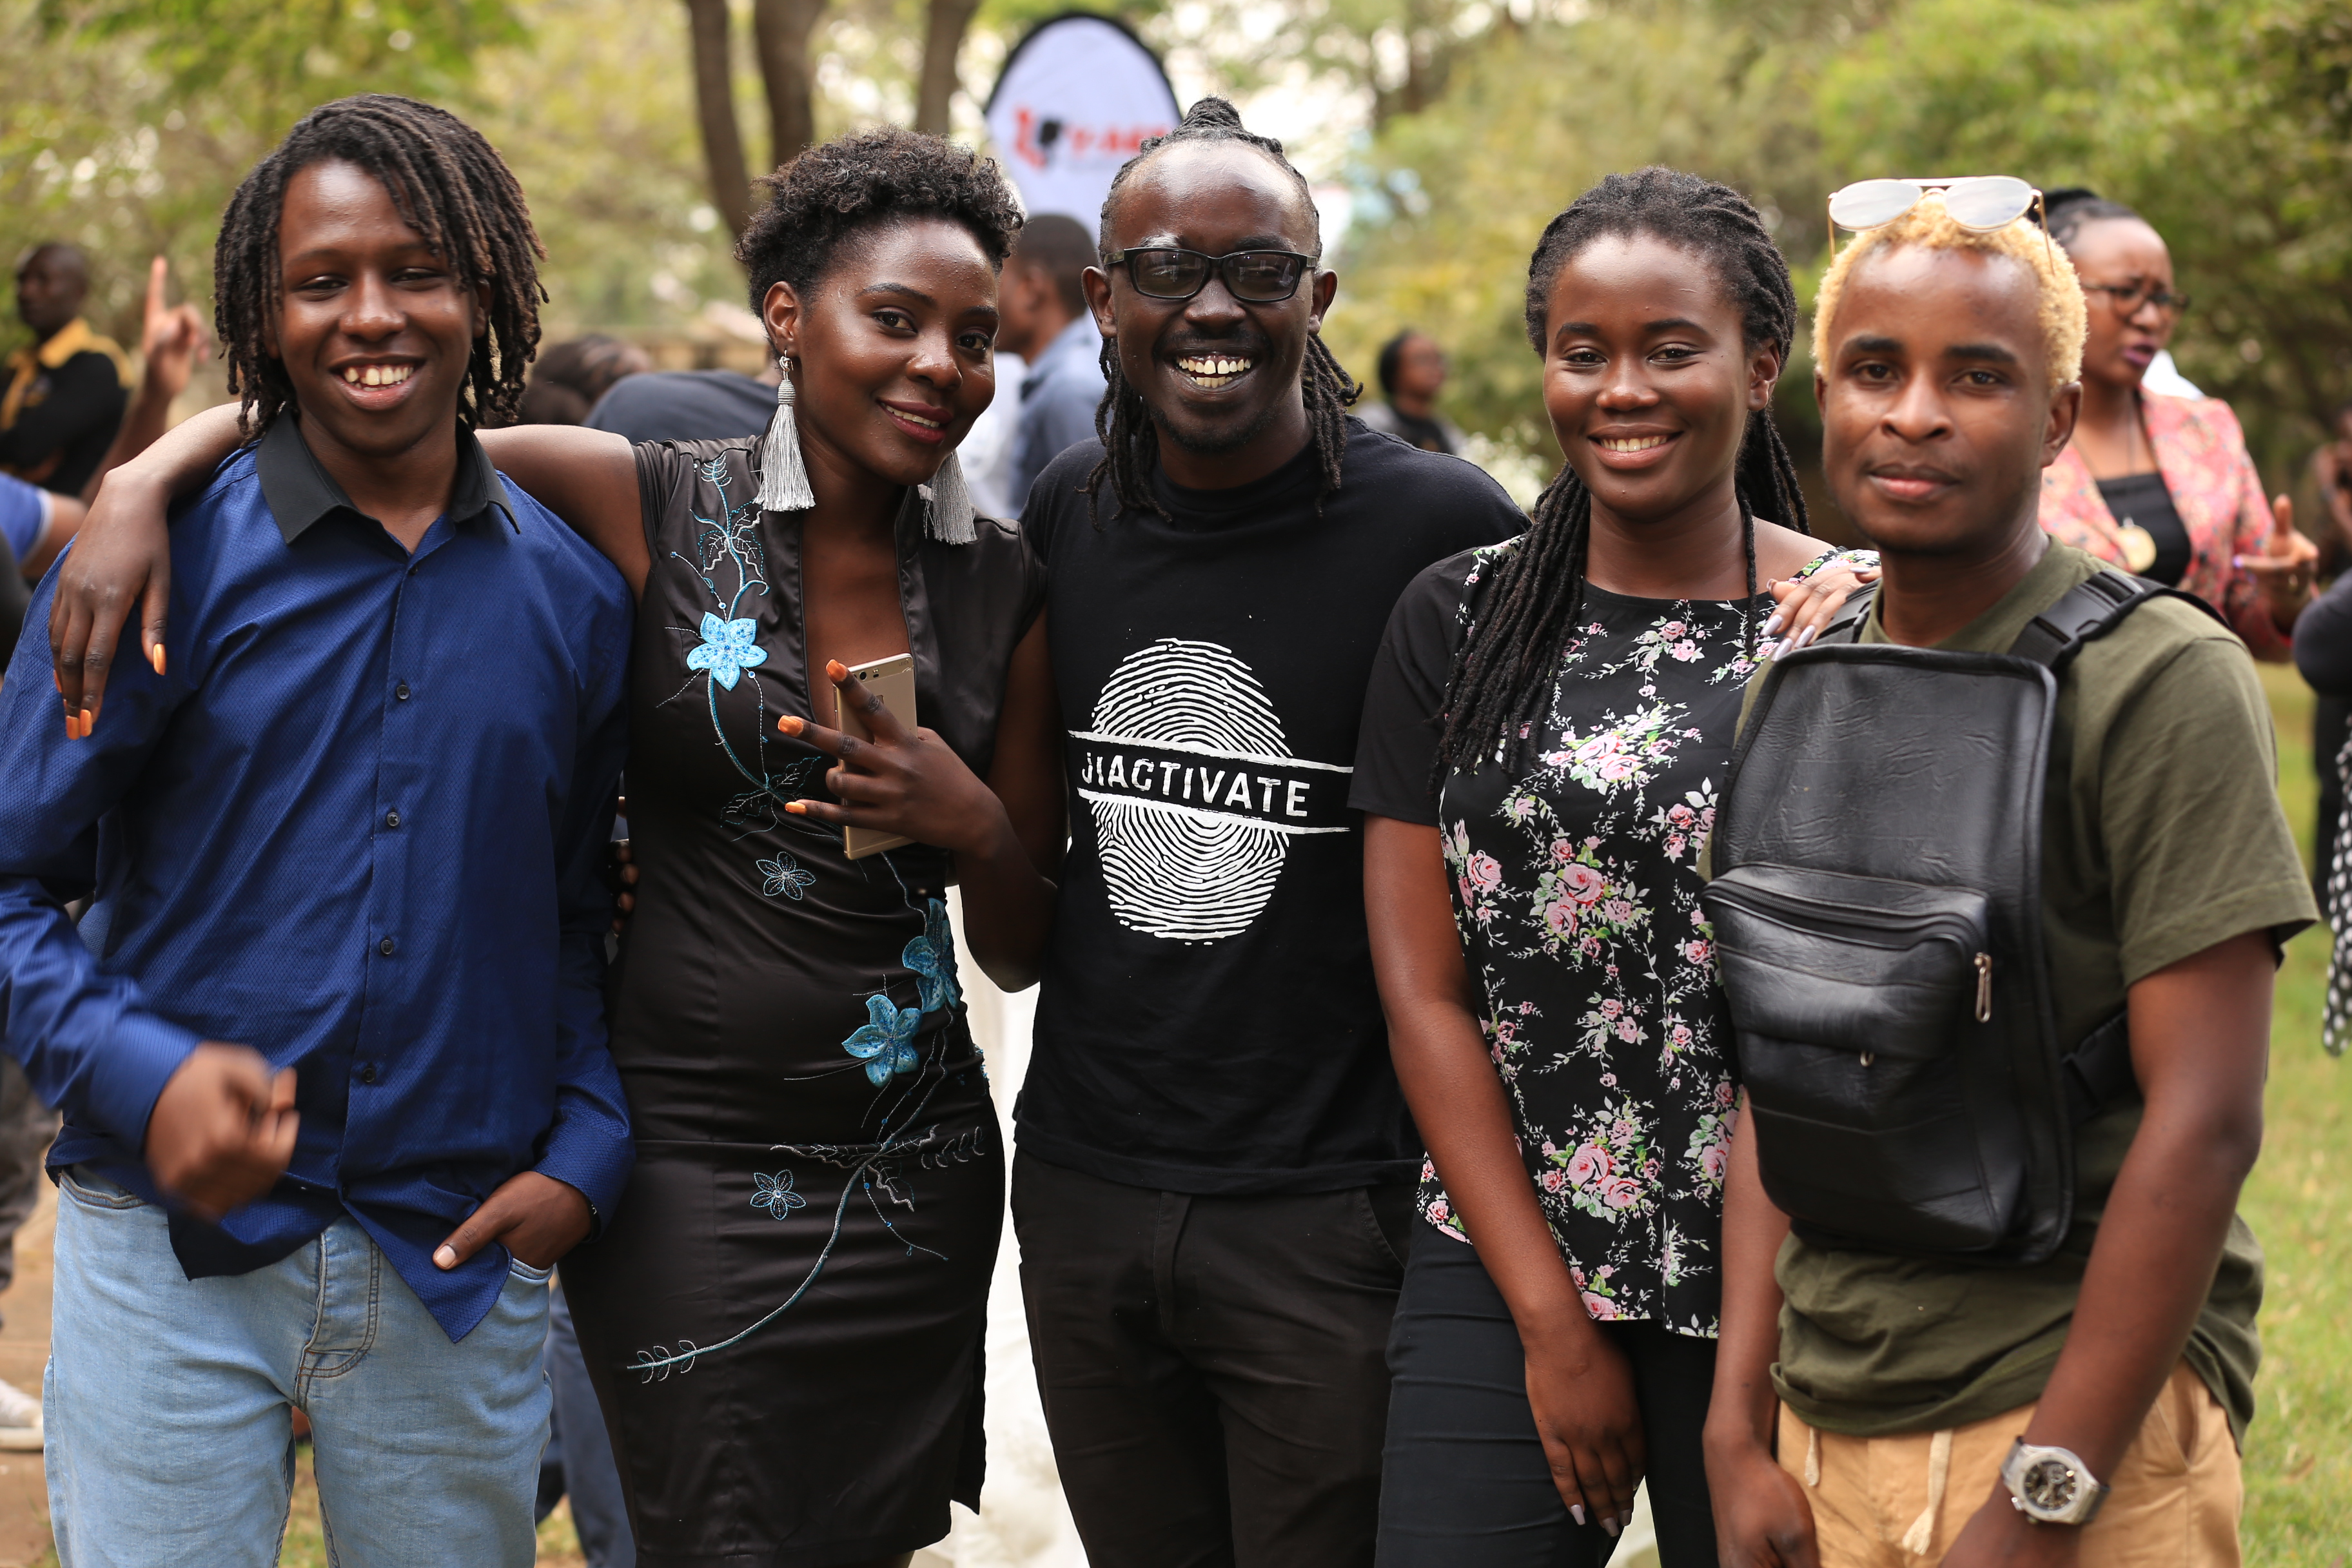 Active youth participation needed to attain Universal Health Coverage in Africa by 2030